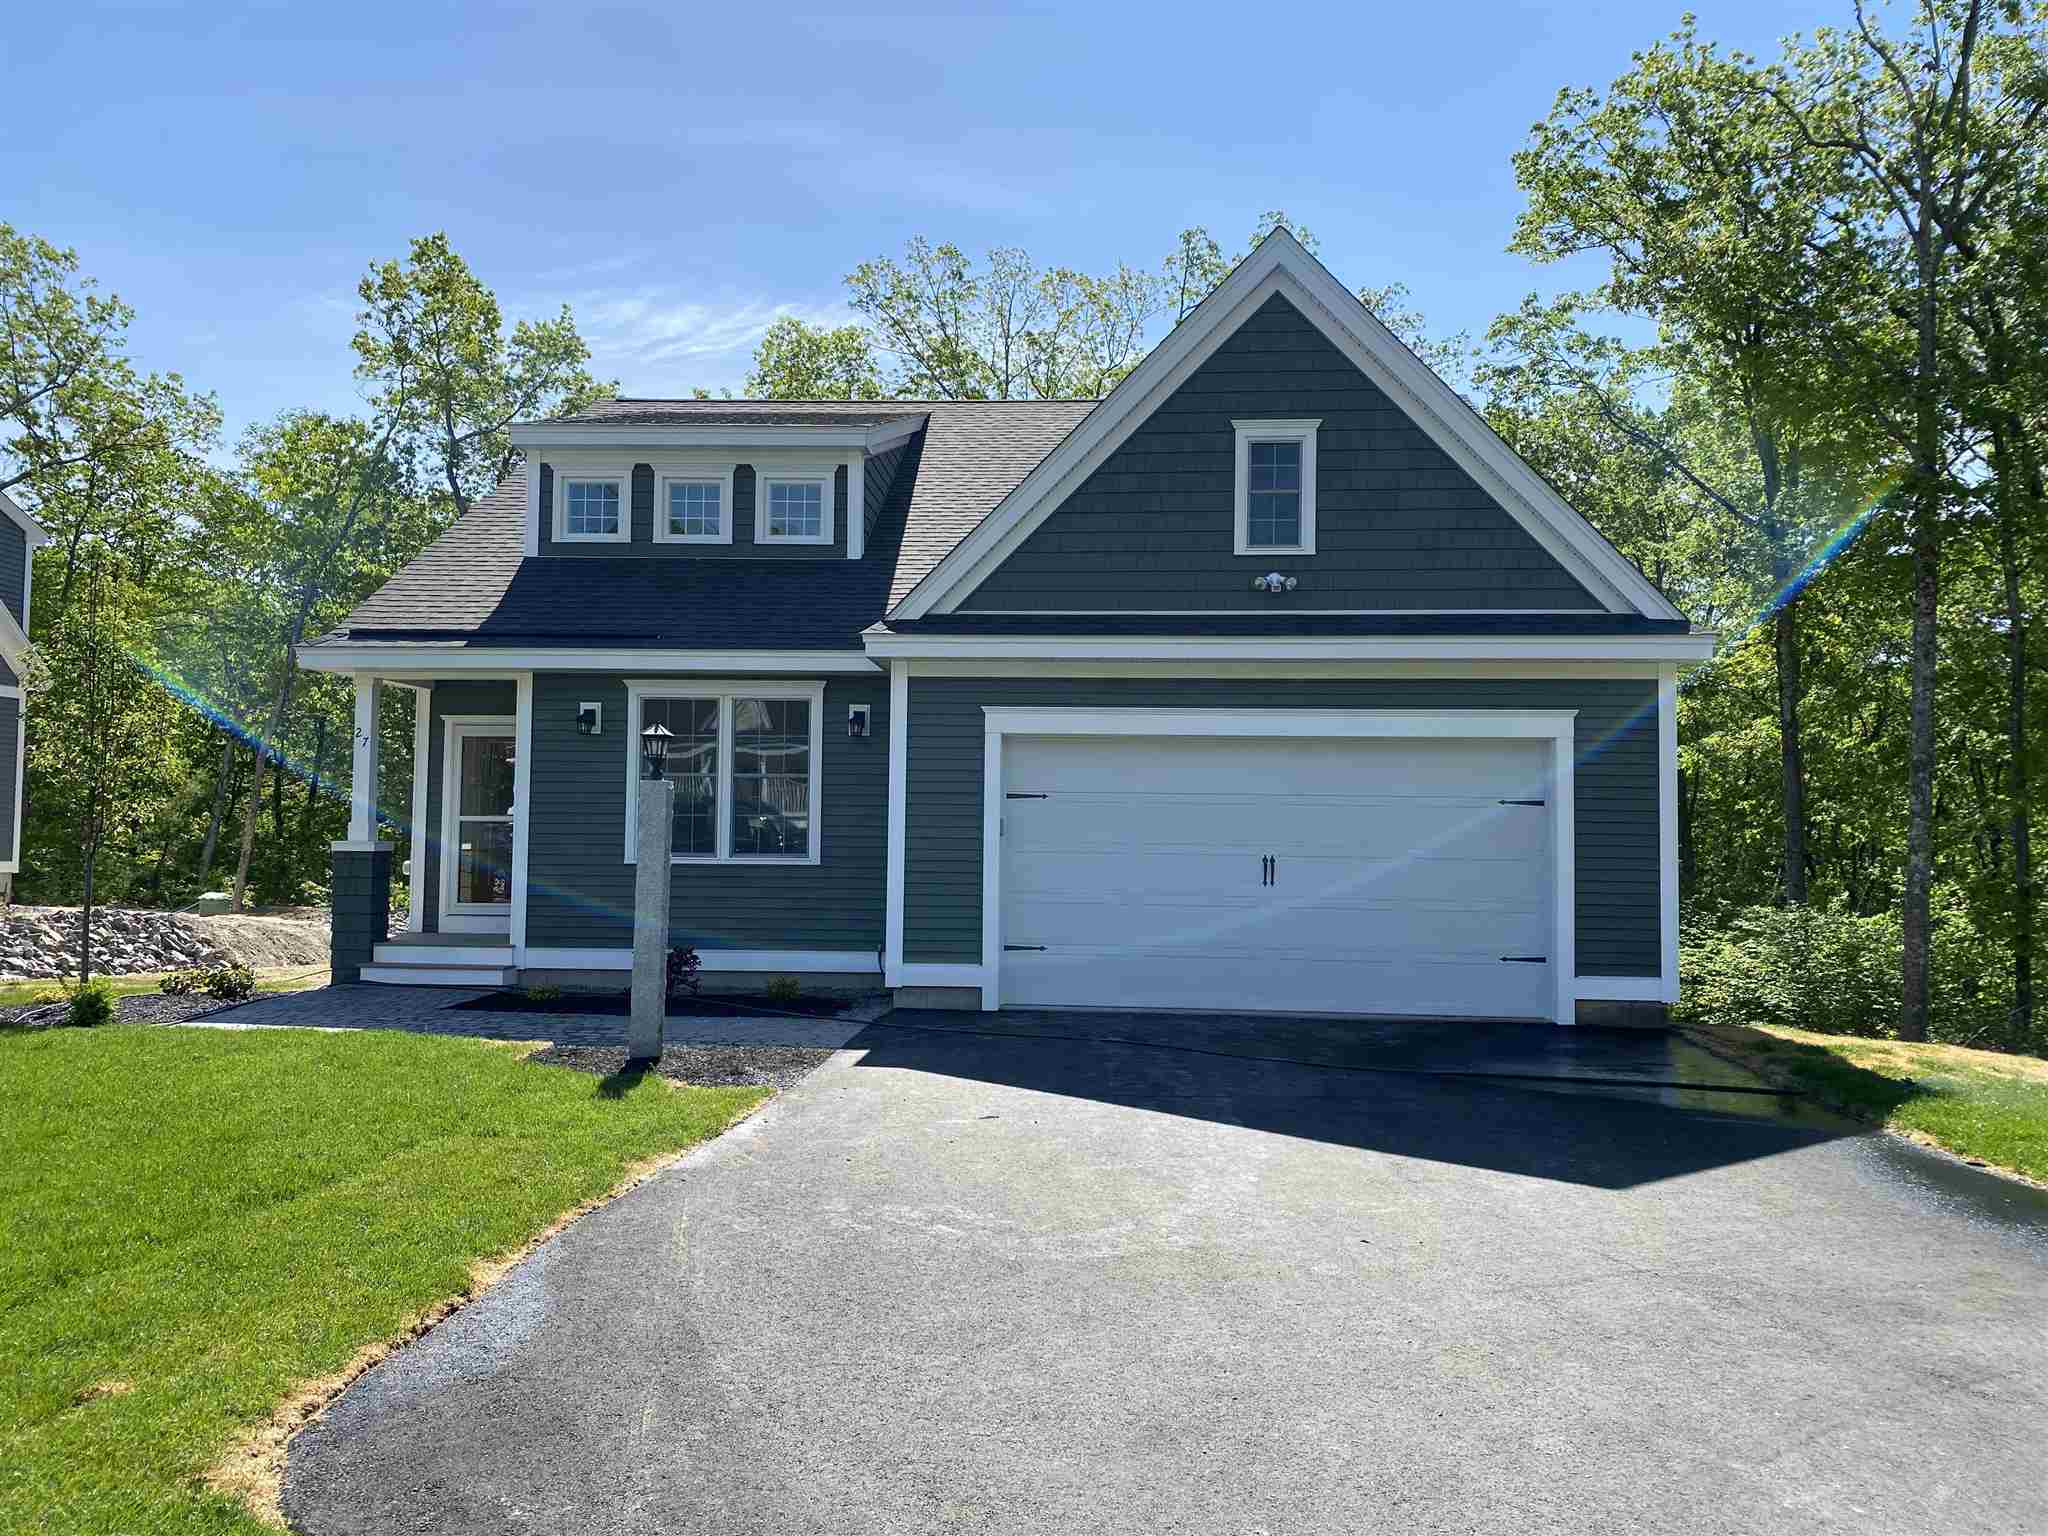 Photo of Lot 93 Lorden Commons Londonderry NH 03053